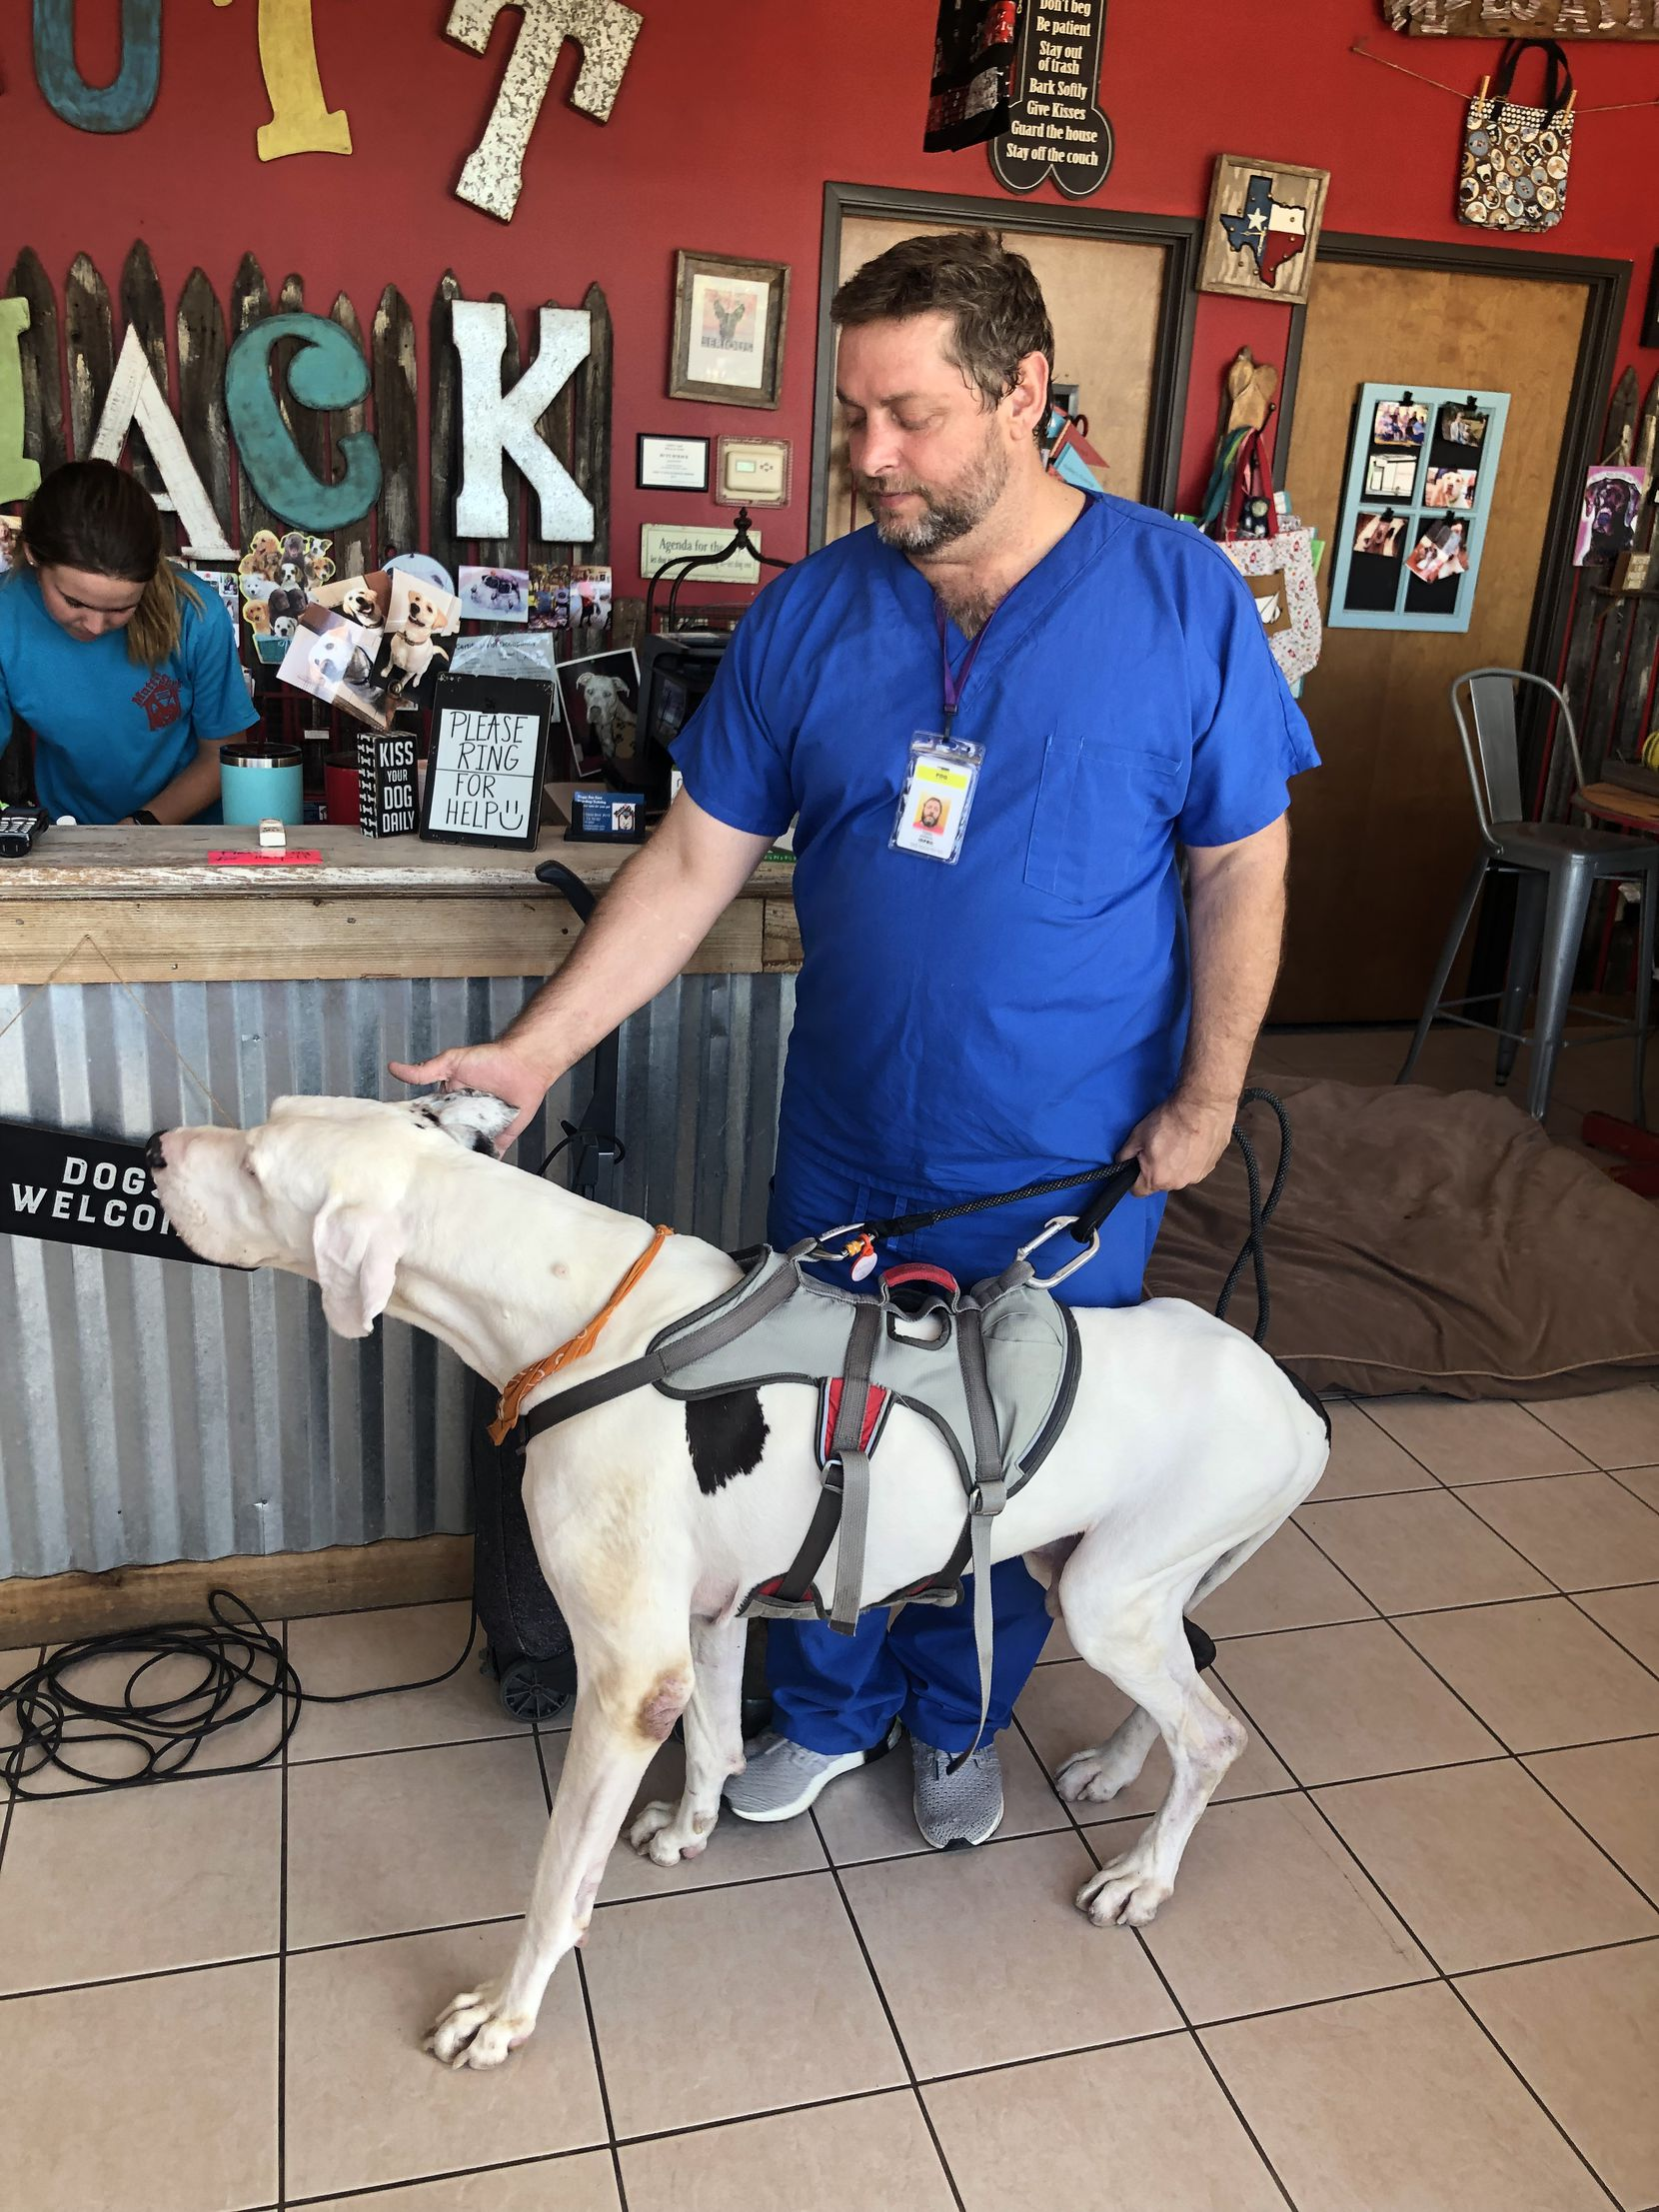 Todd Johnson picking up Samson at the now-closed Mutt Shack after a day of work. The man and his dog energized a community to get involved.